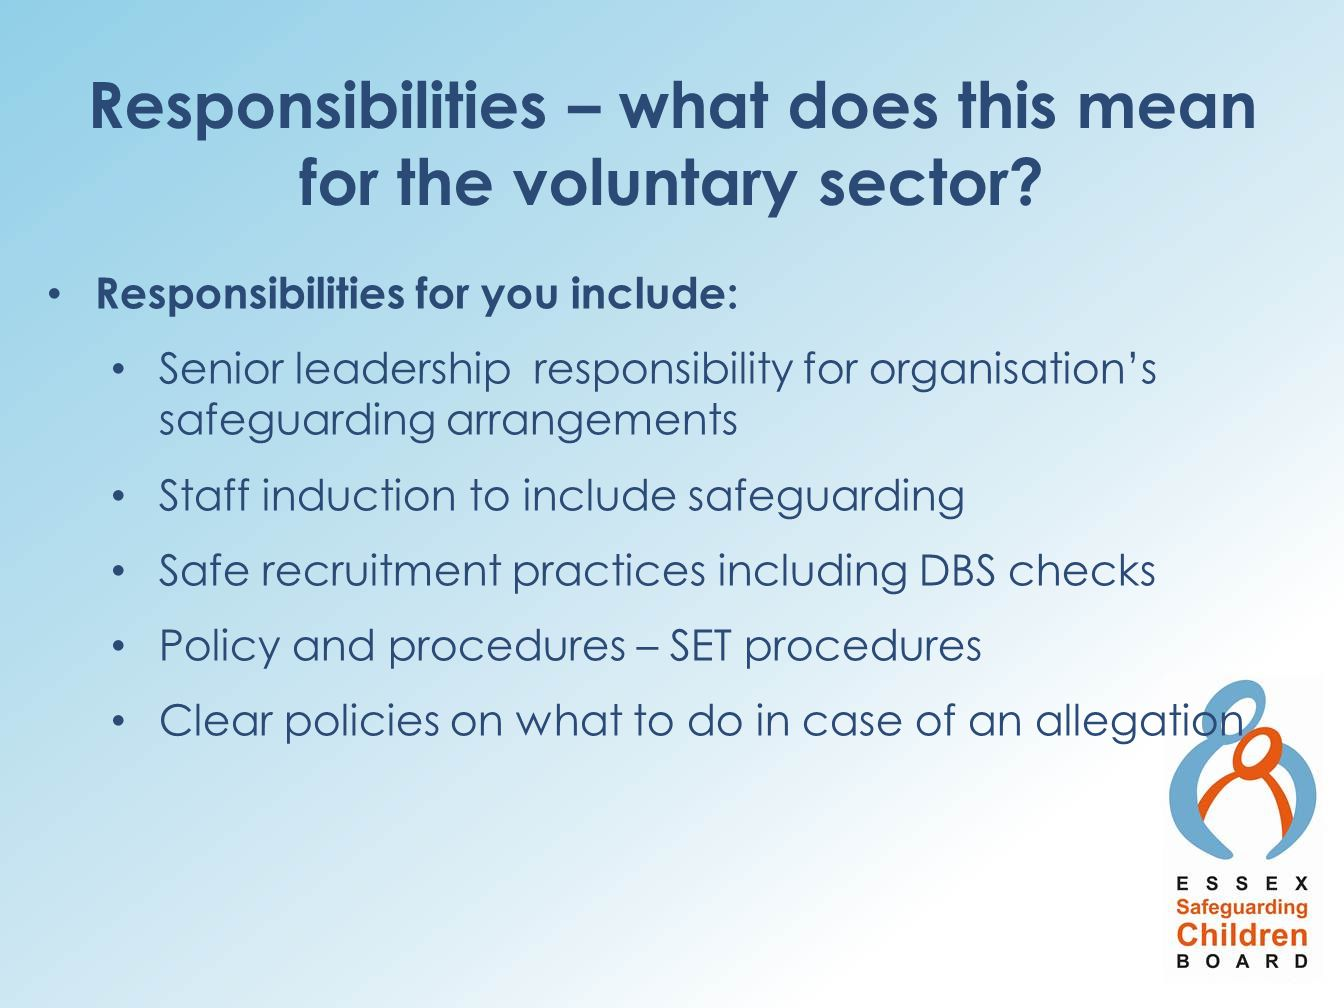 Responsibilities – what does this mean for the voluntary sector